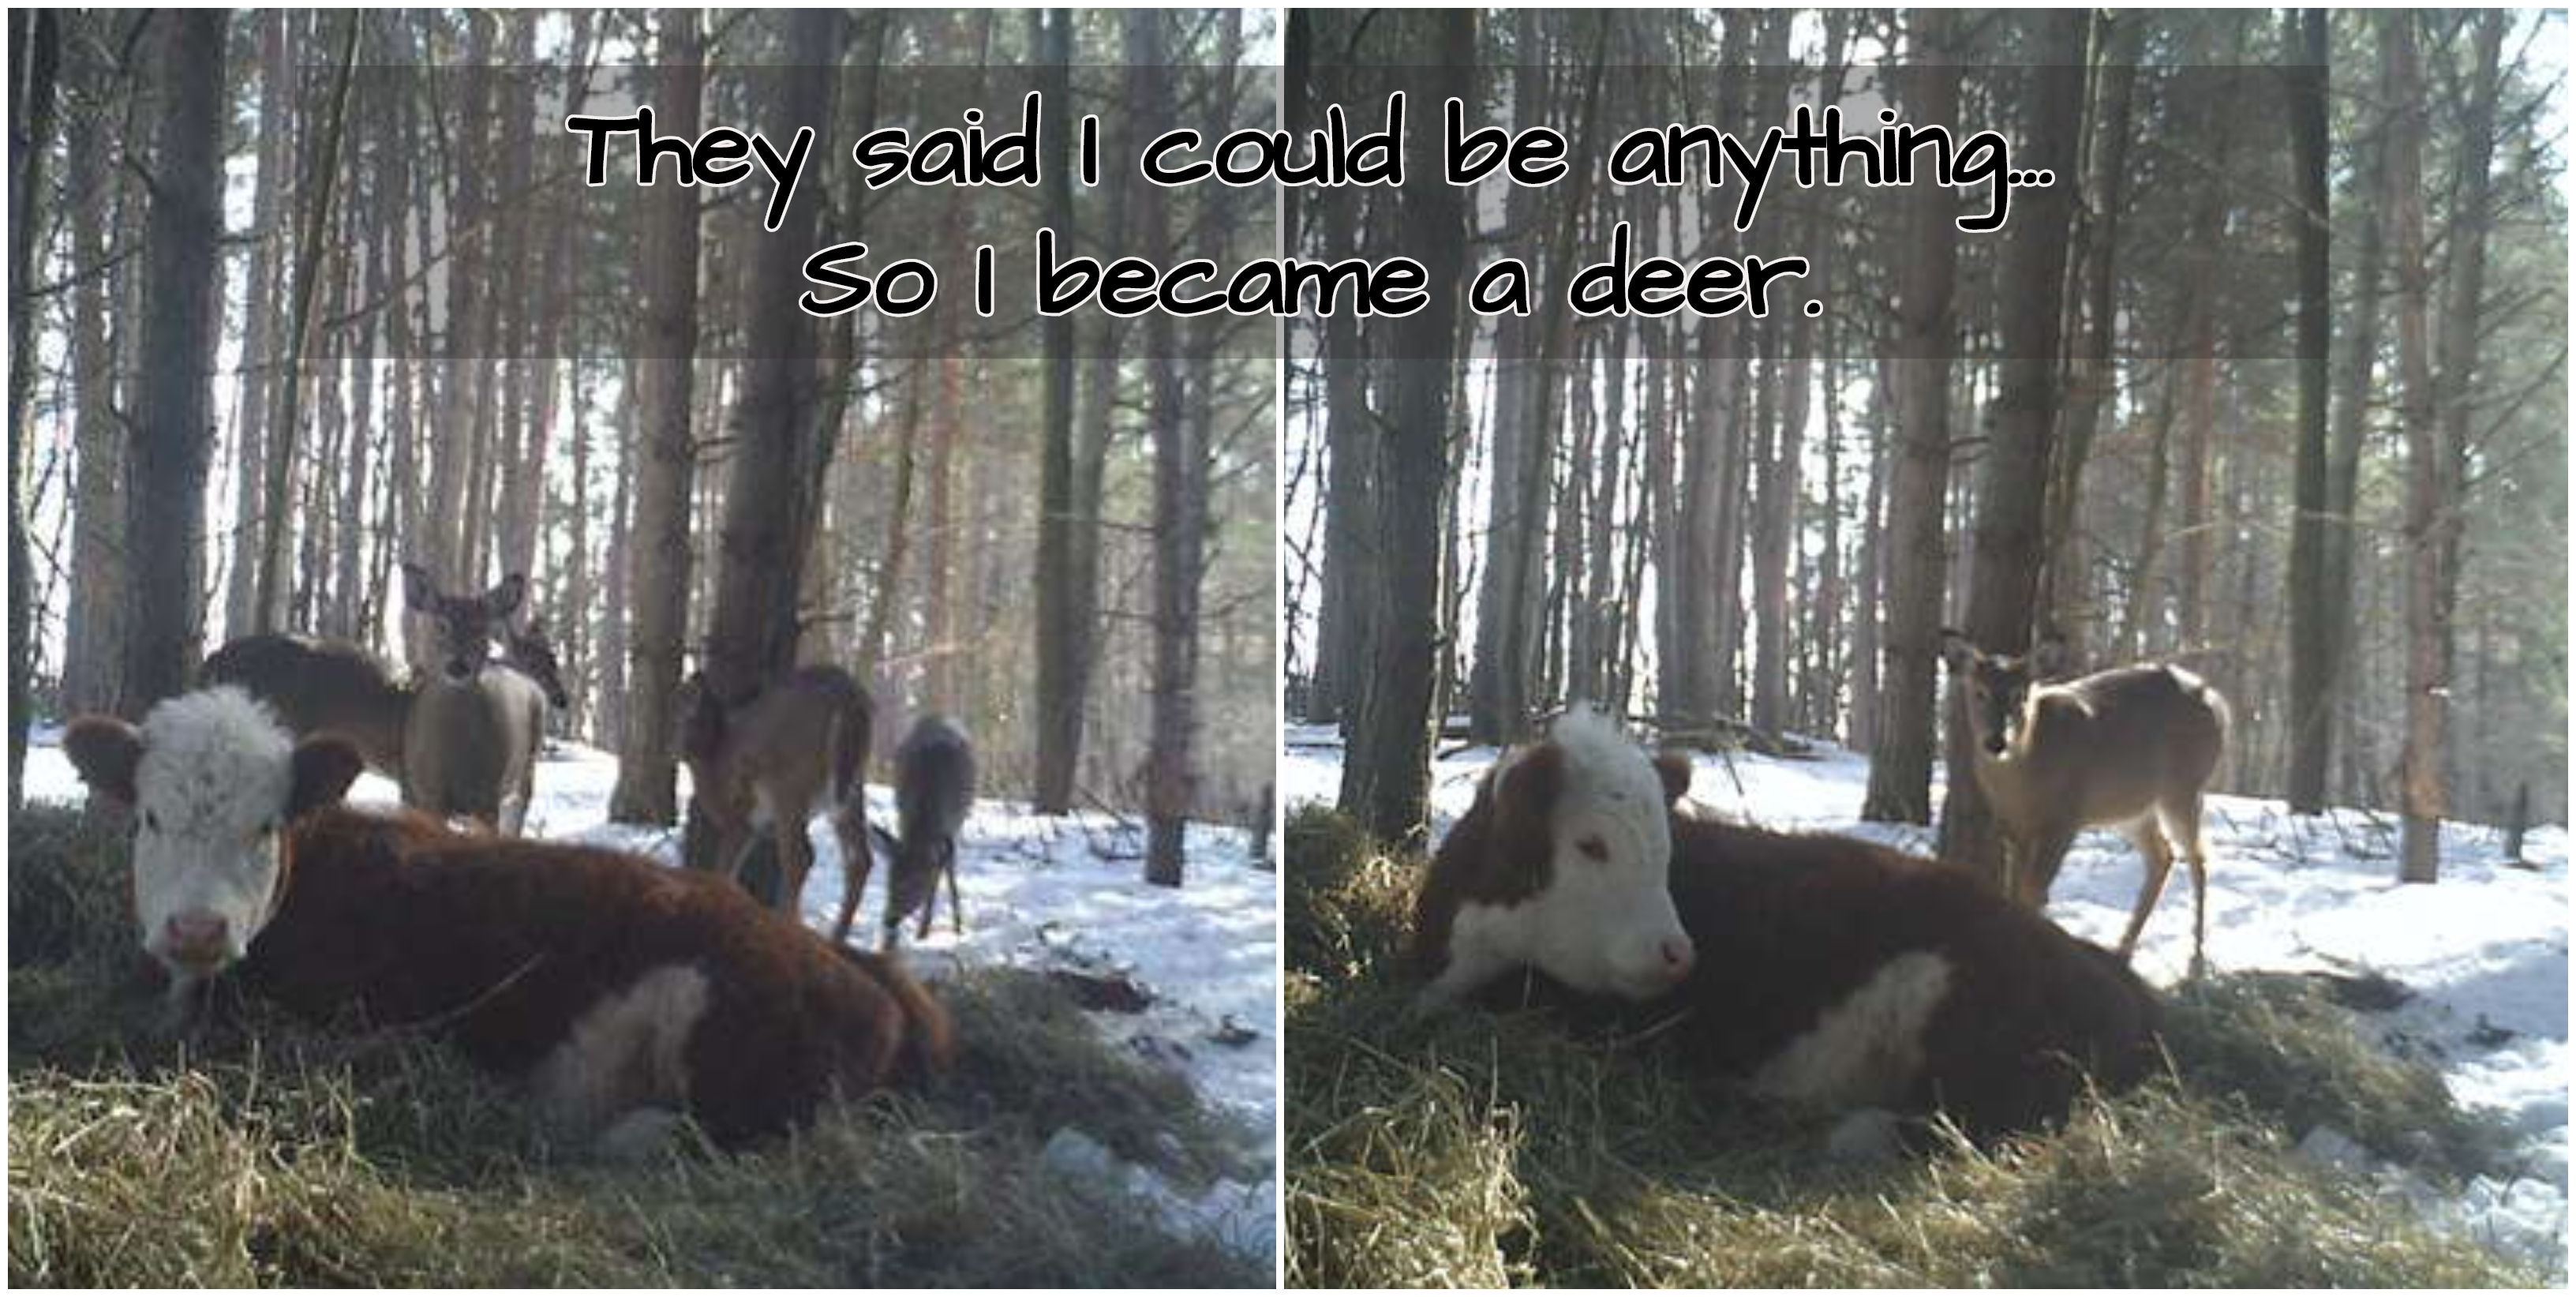 Calf Adopted By Deer Family In The Woods After Escaping Slaughter